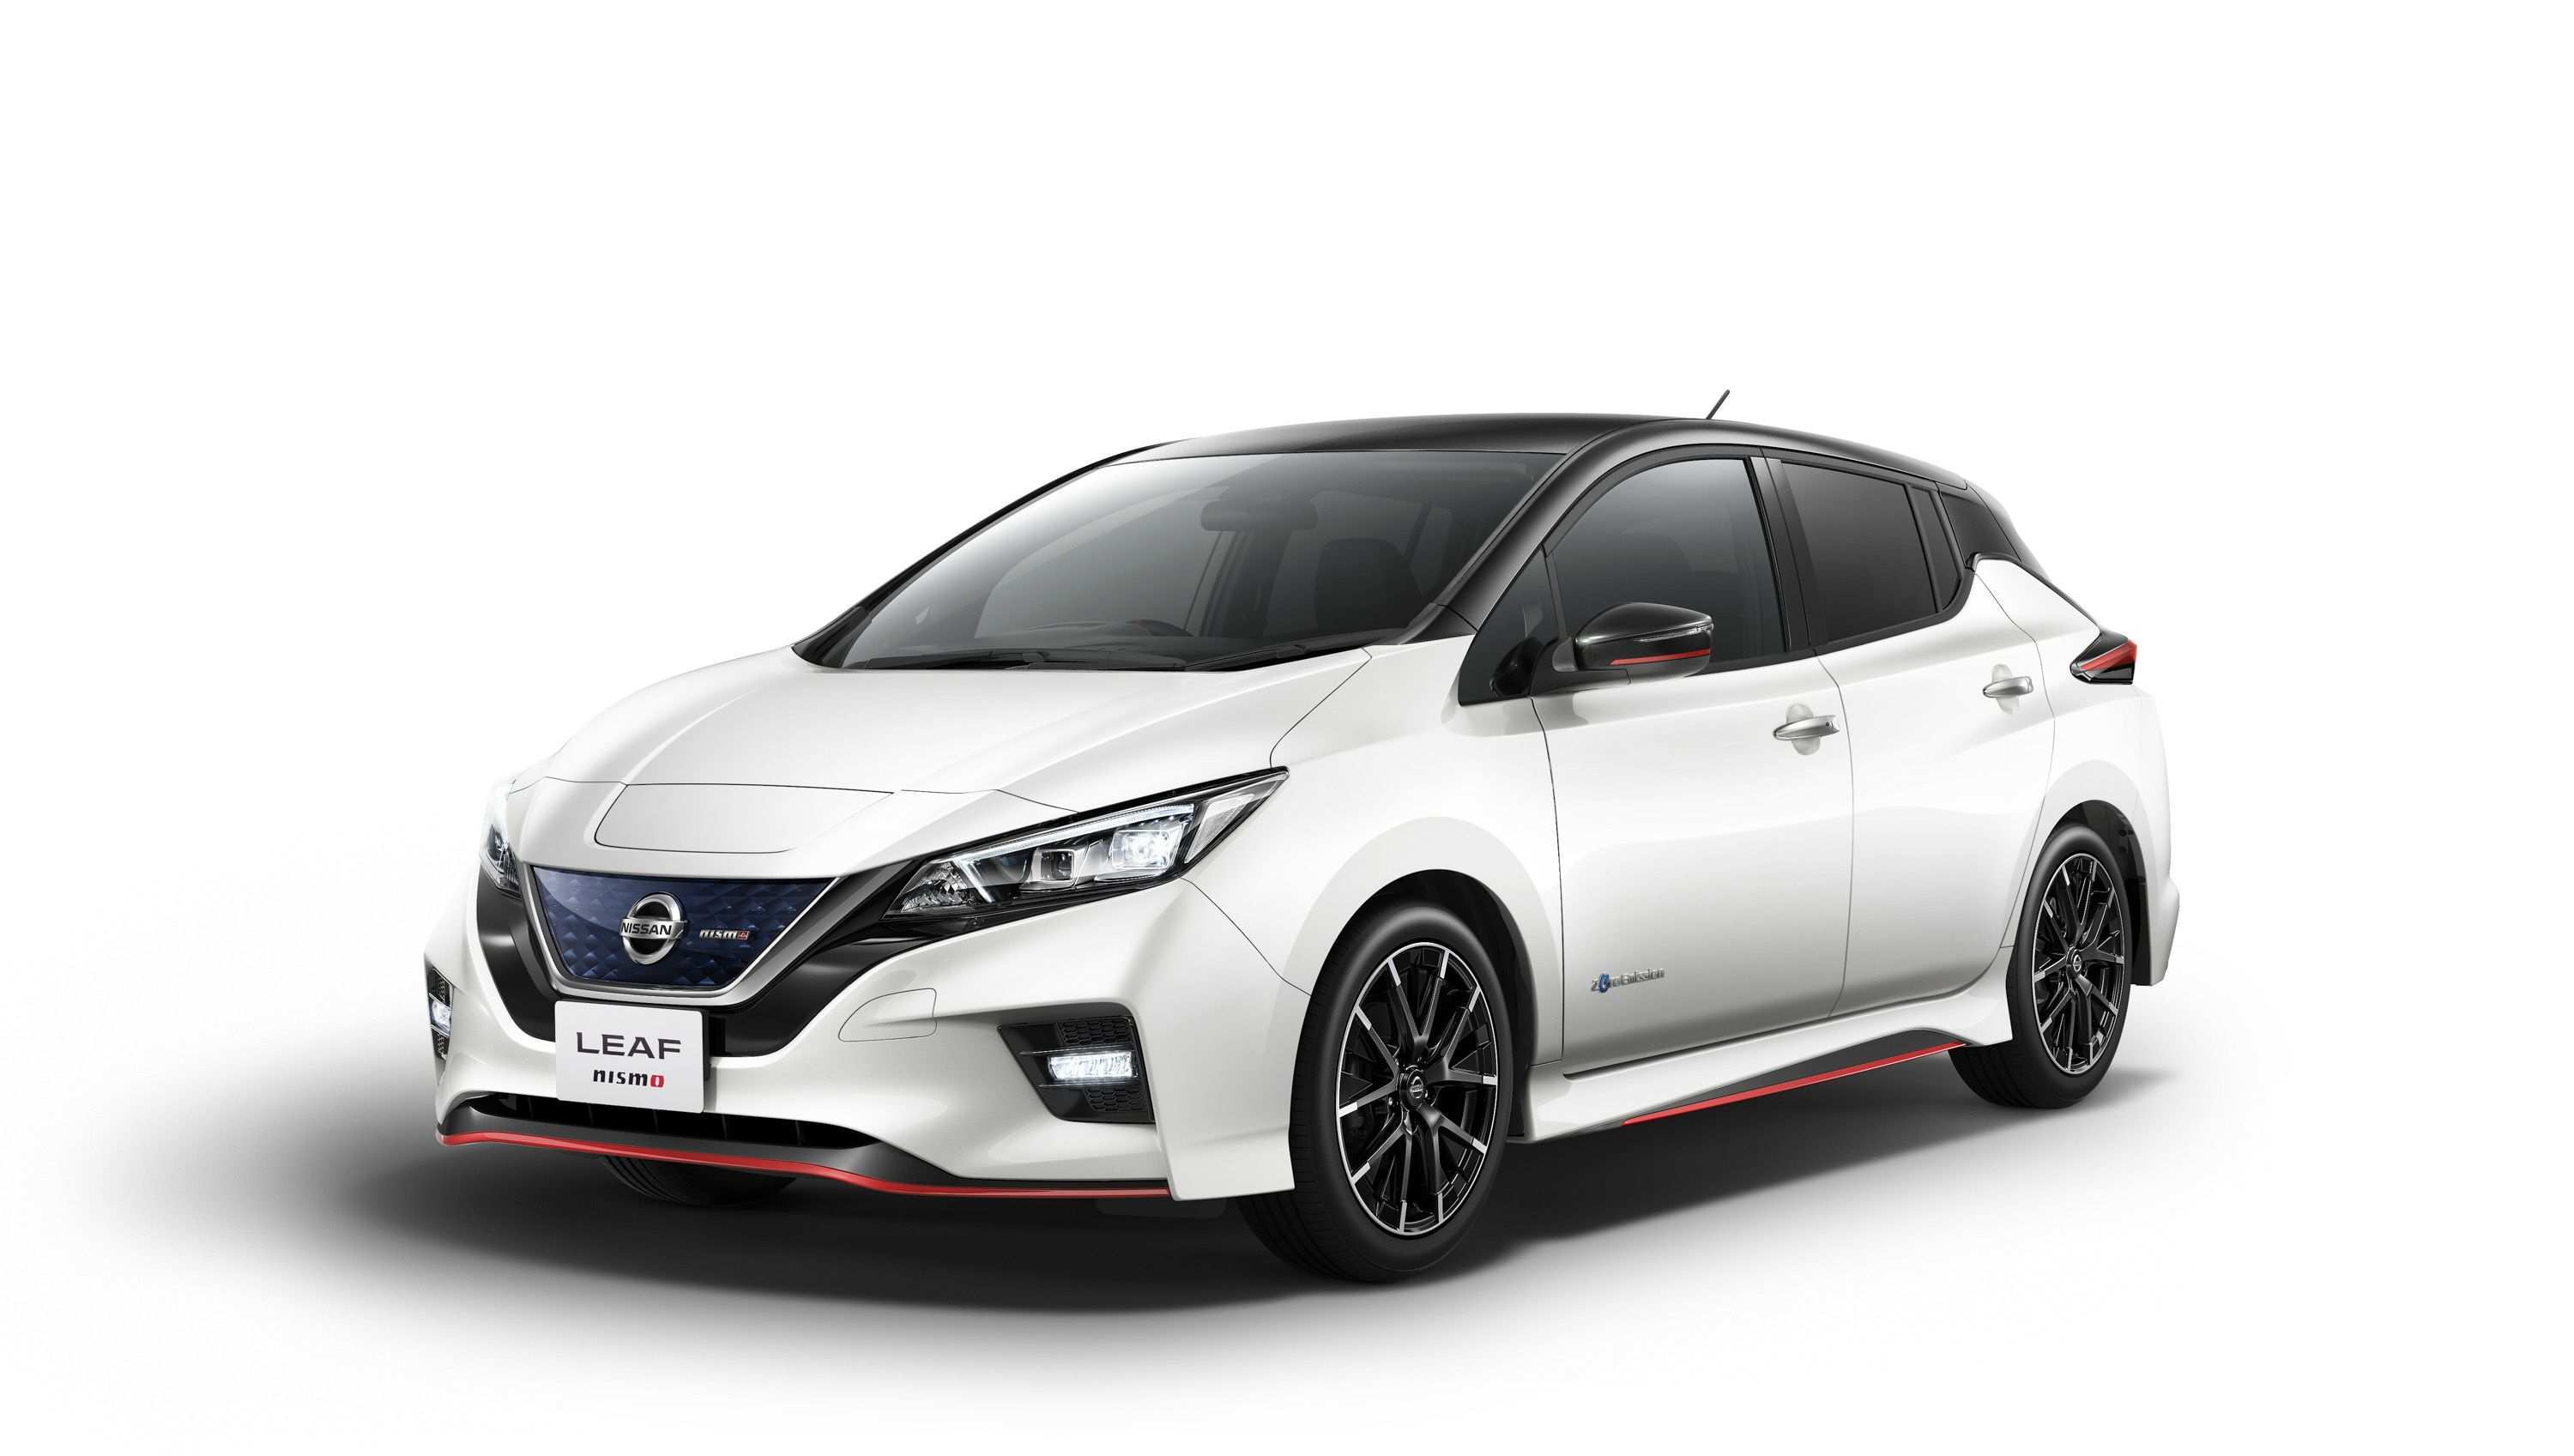 58 All New Nissan Leaf Nismo 2019 Performance And New Engine Research New by Nissan Leaf Nismo 2019 Performance And New Engine